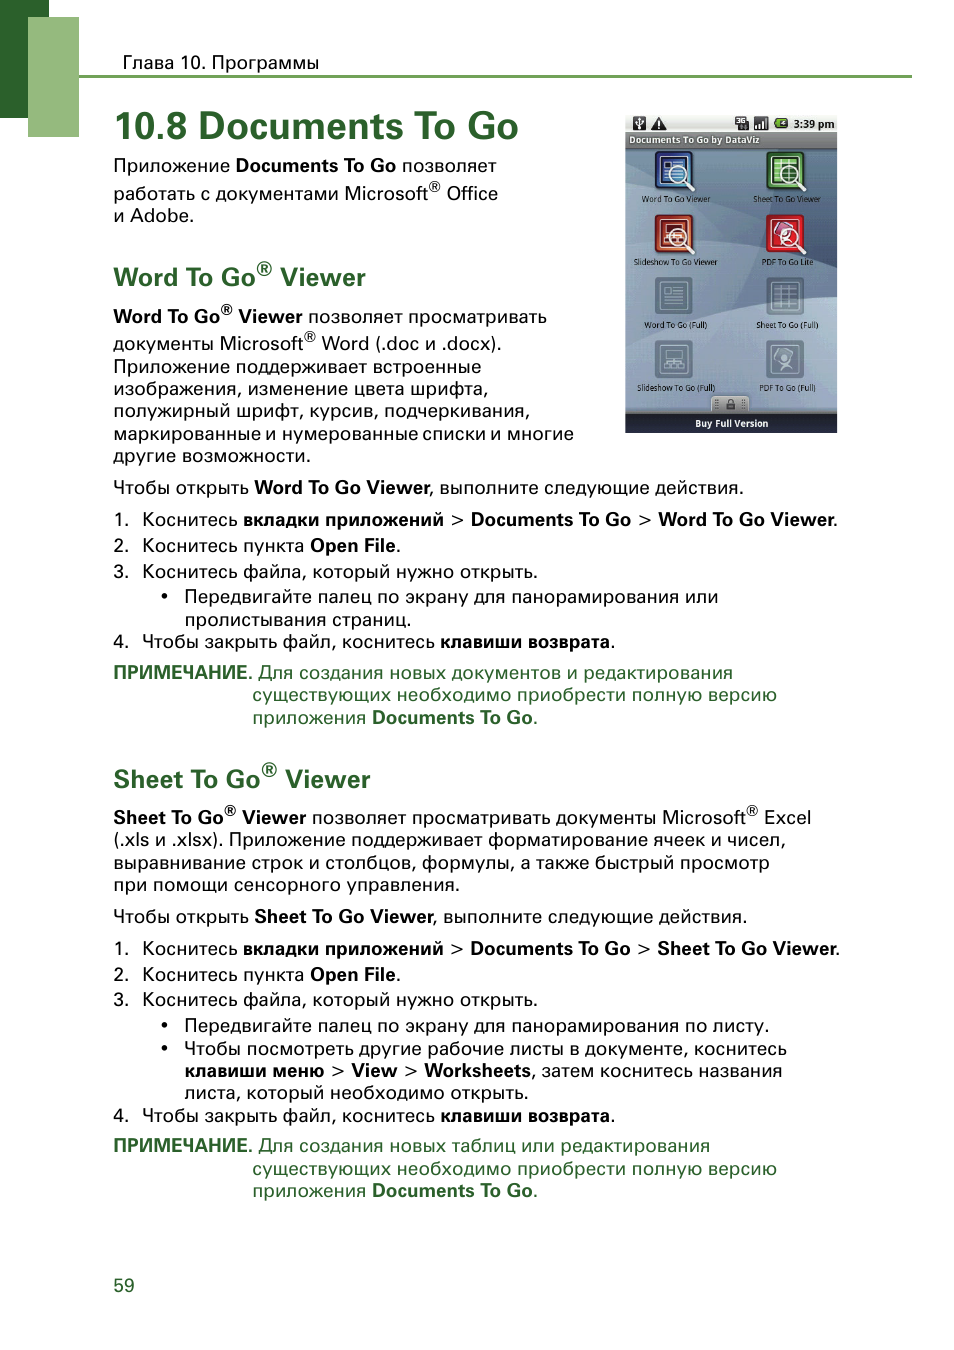 8 documents to go word to gor viewer sheet to gor viewer for Documents to go manual